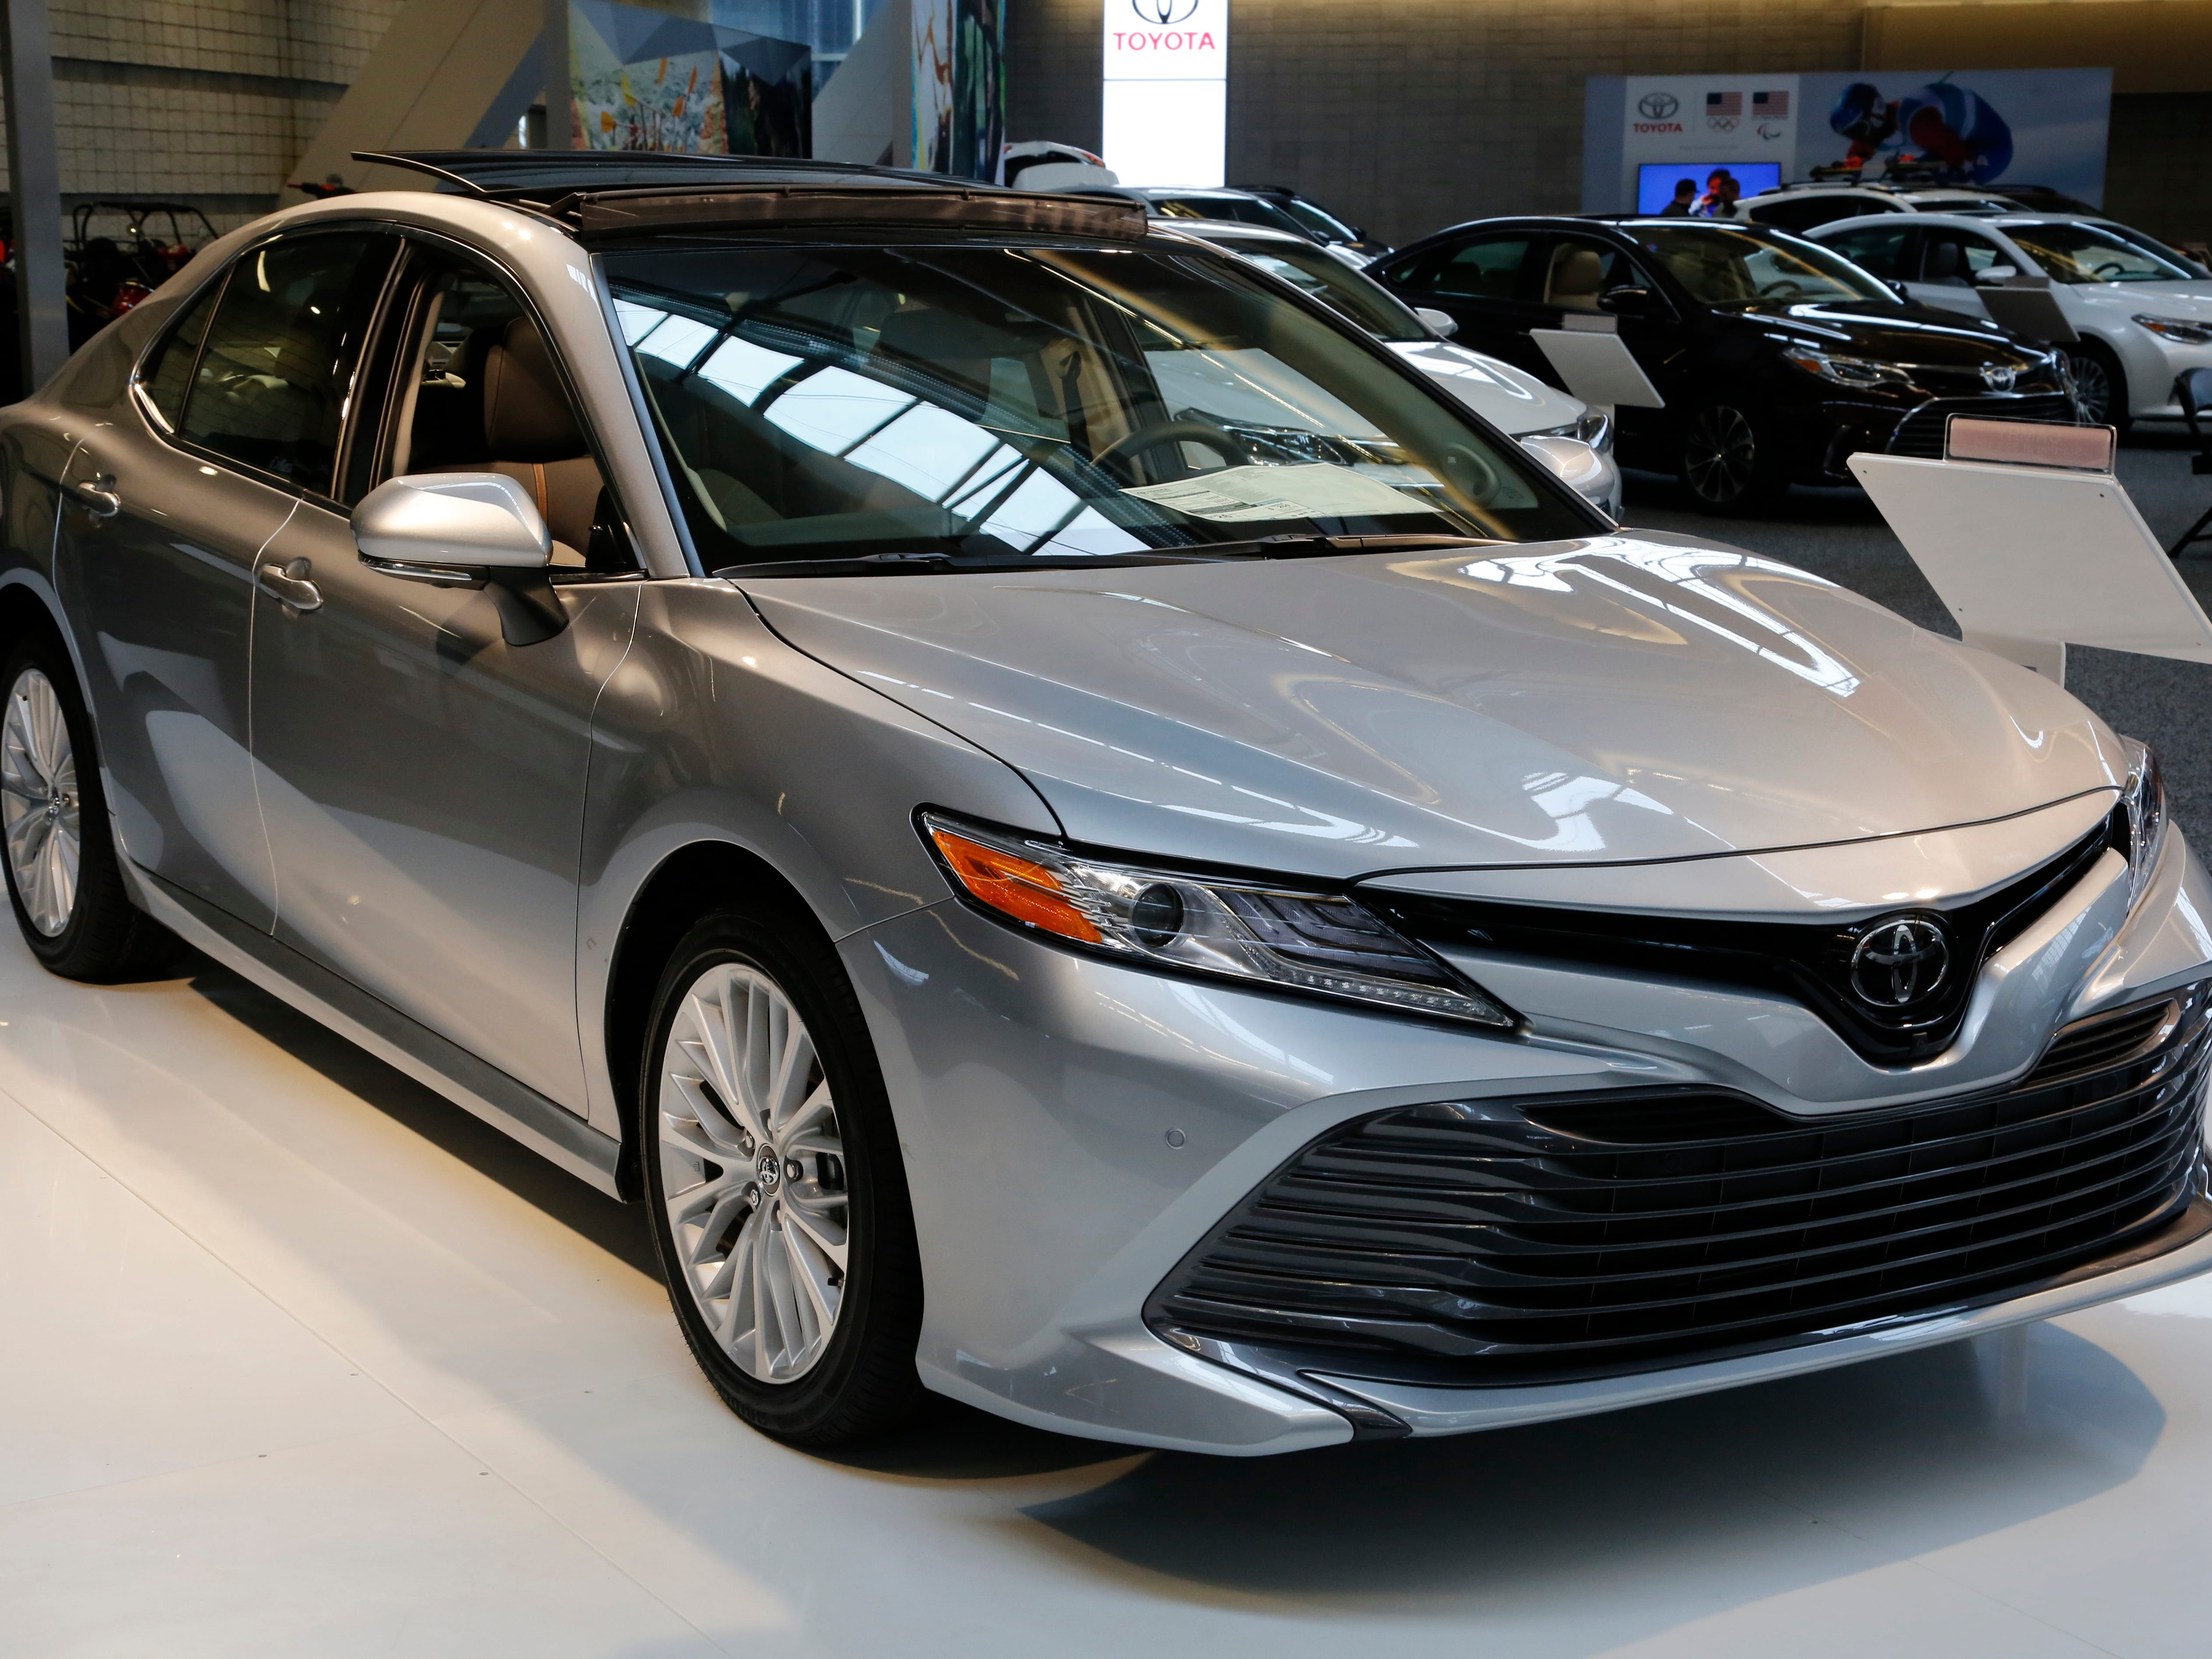 The most valuable car brand is Toyota, the flagship brand of the Toyota Motor Corp., which came in seventh on the overall list. Its value was pegged at $53 billion, up 6 percent.